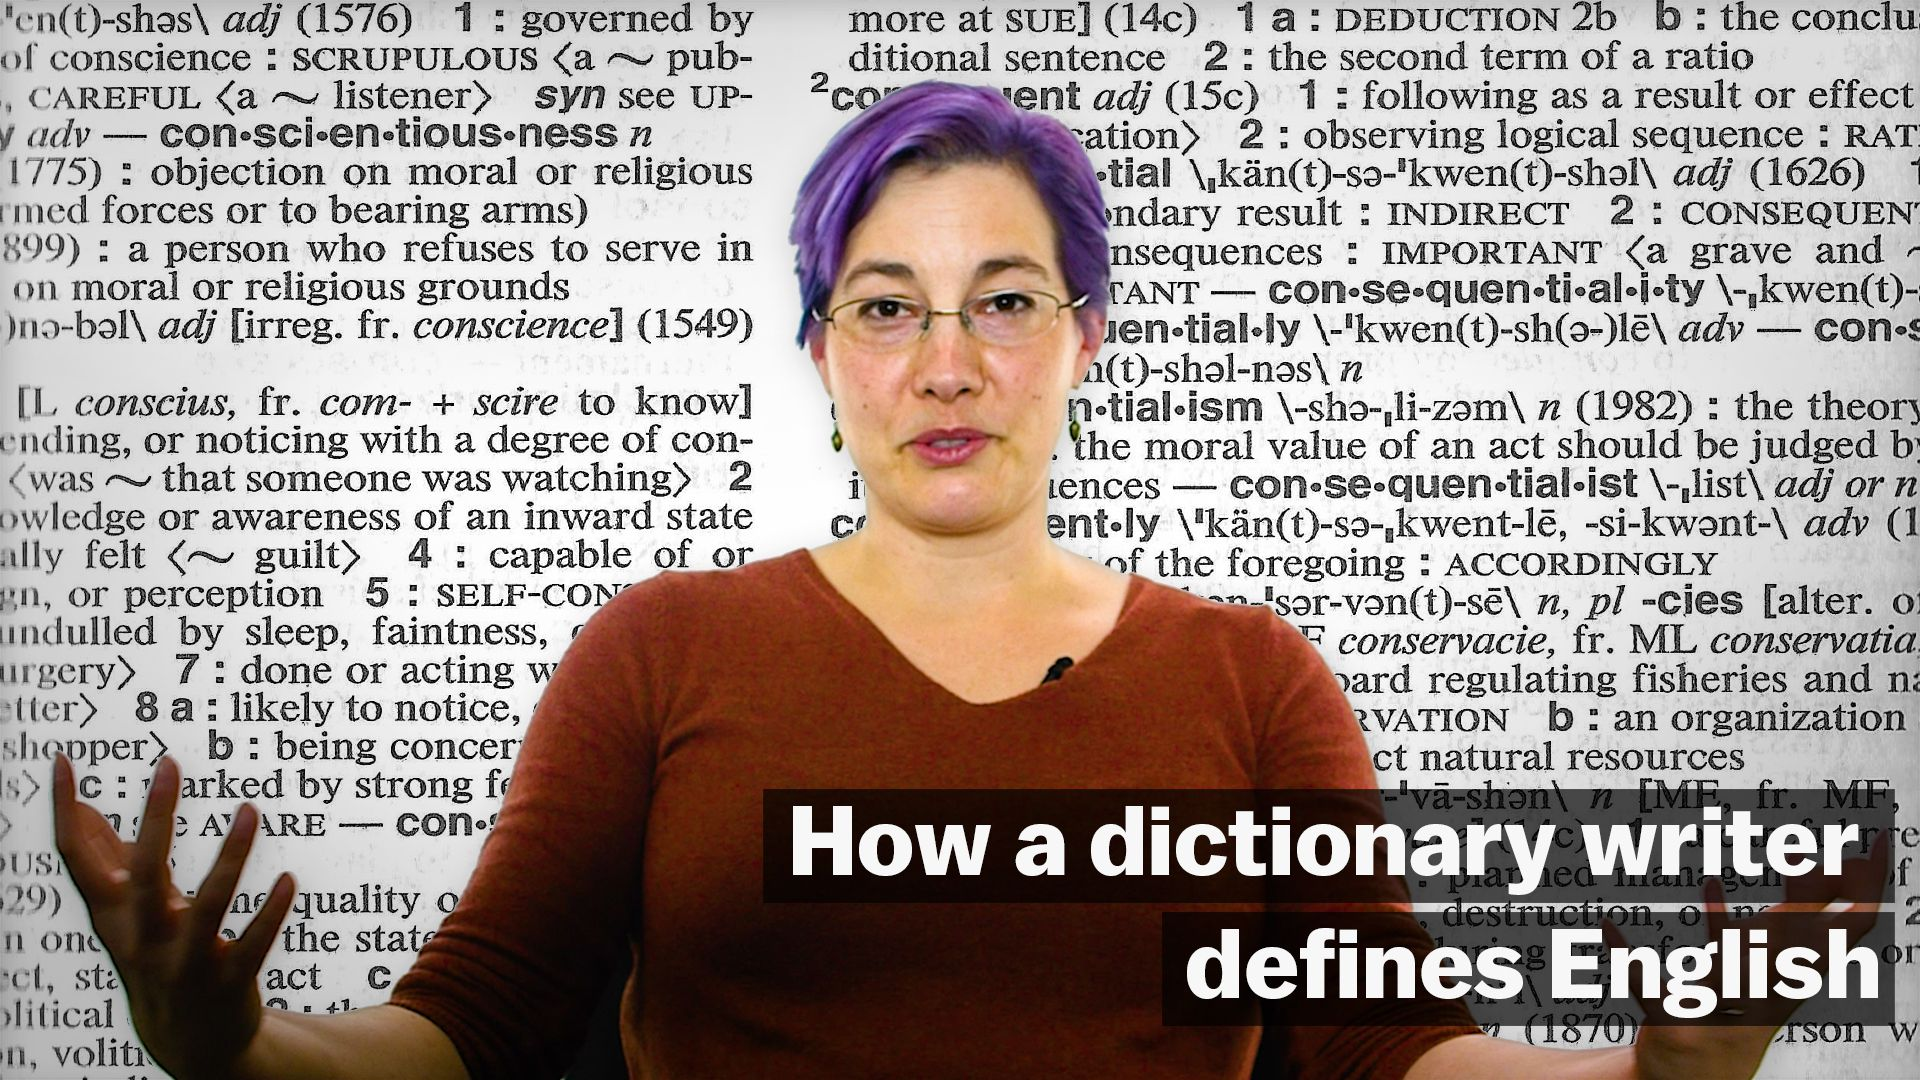 Watch how a dictionary writer defines English - Vox